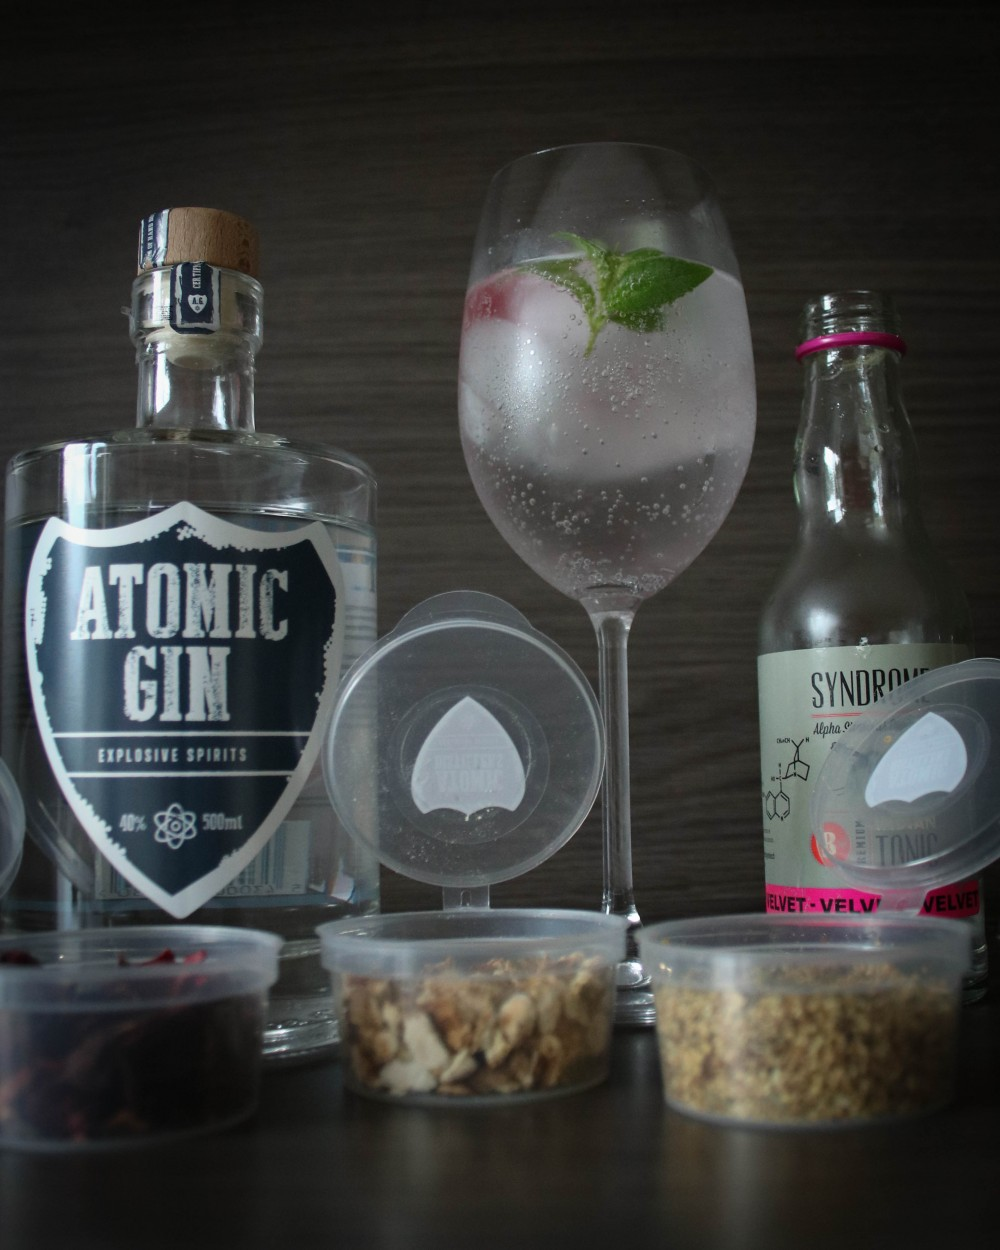 Belgian Gin tonic Recipe (Atomic Gin and Syndrome Tonic)